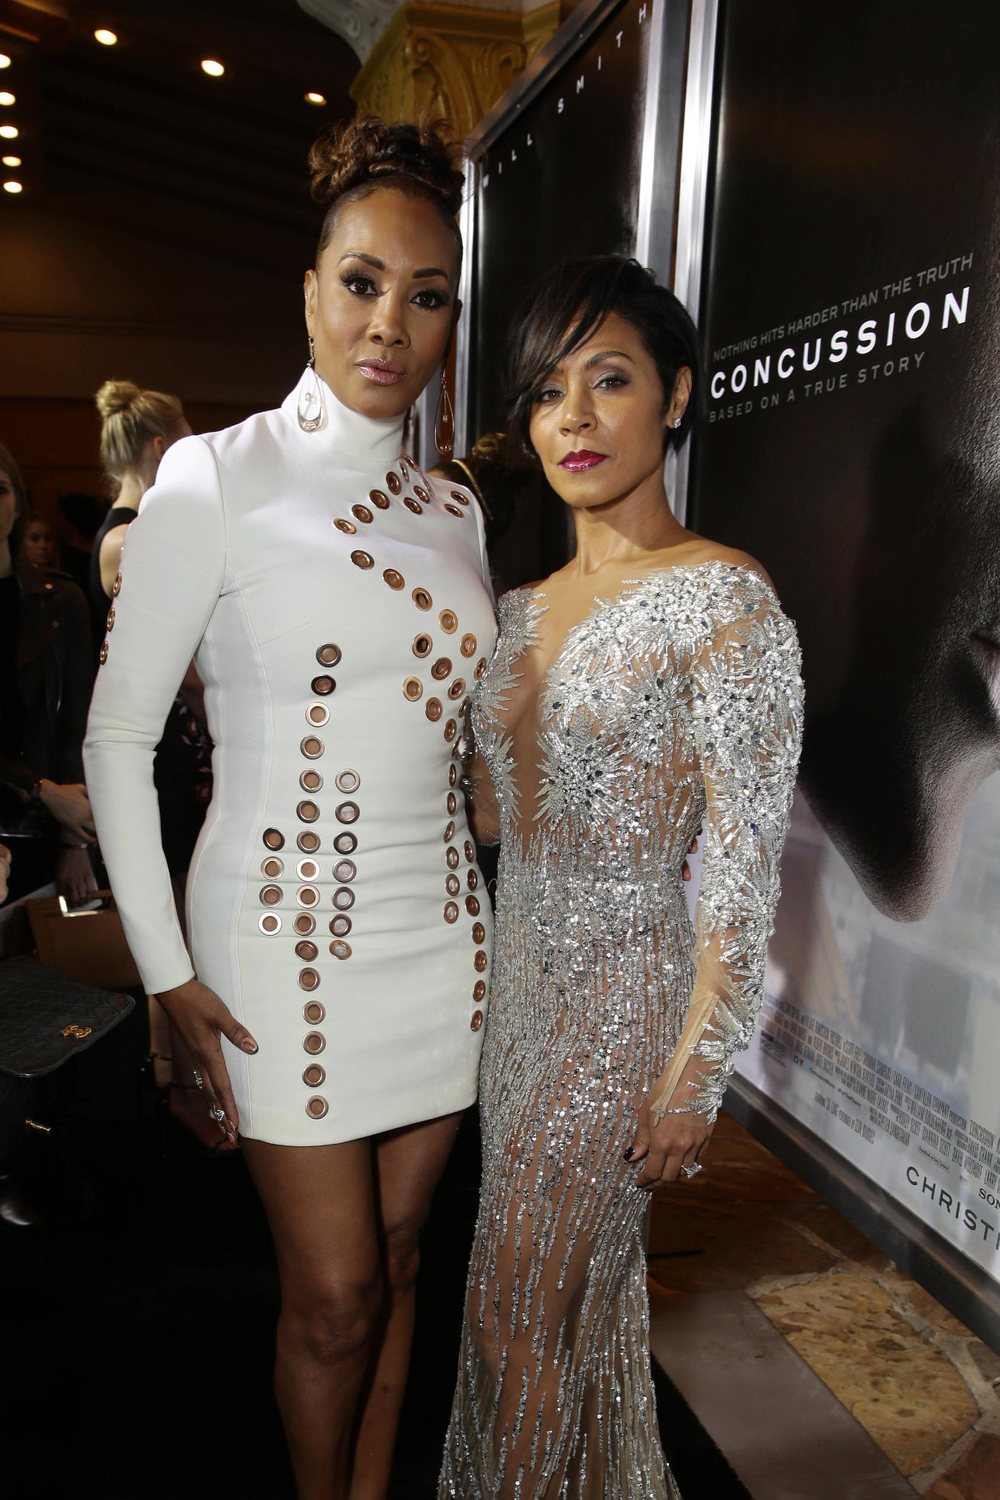 LOS ANGELES, CA- November 23, 2015. Vivica A. Fox and Jada Pinkett Smith seen at Columbia Pictures' Special Screening of CONCUSSION at Regency Village Theatre.